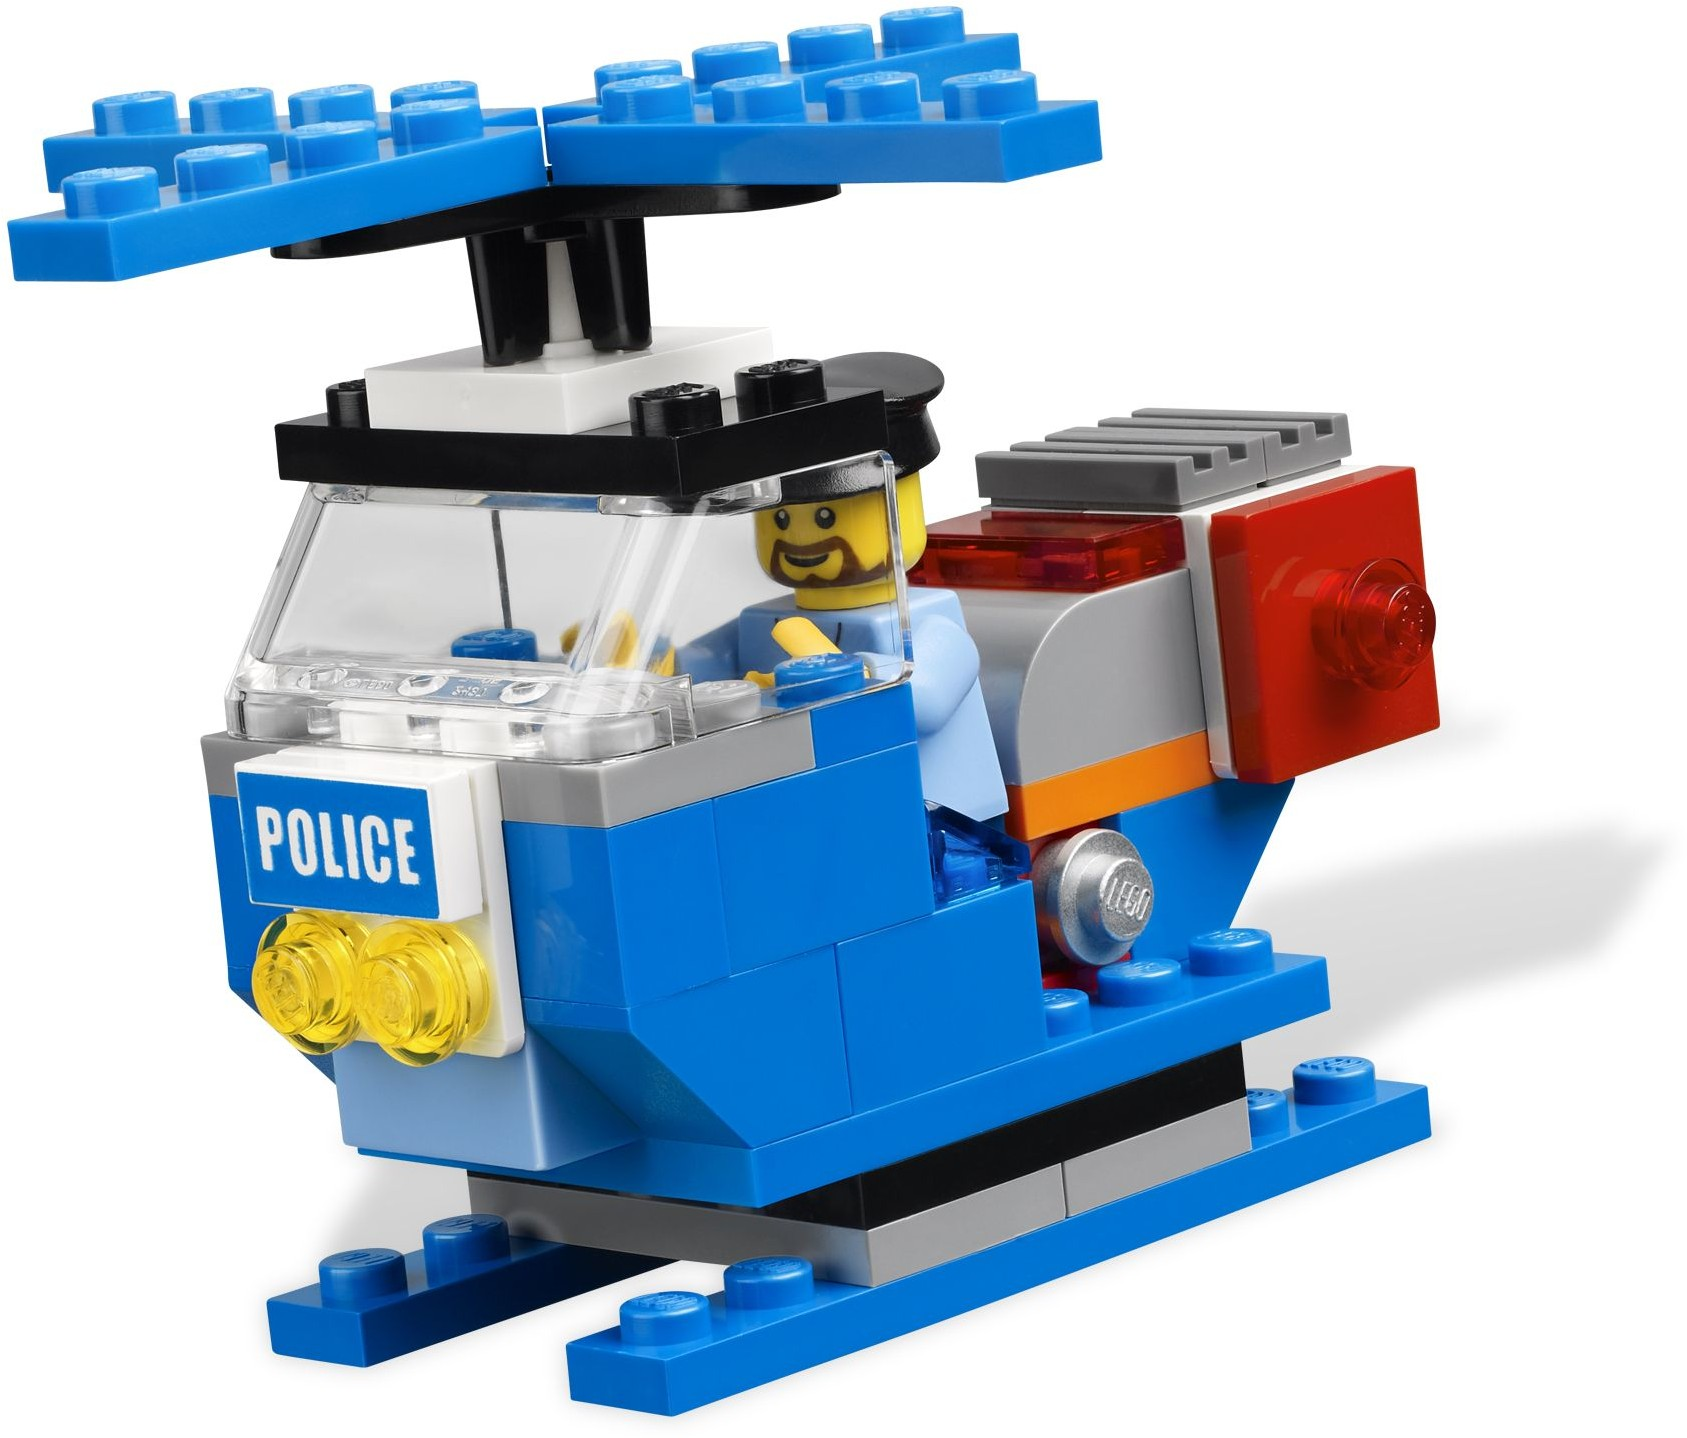 Lego police helicopter instructions 4636